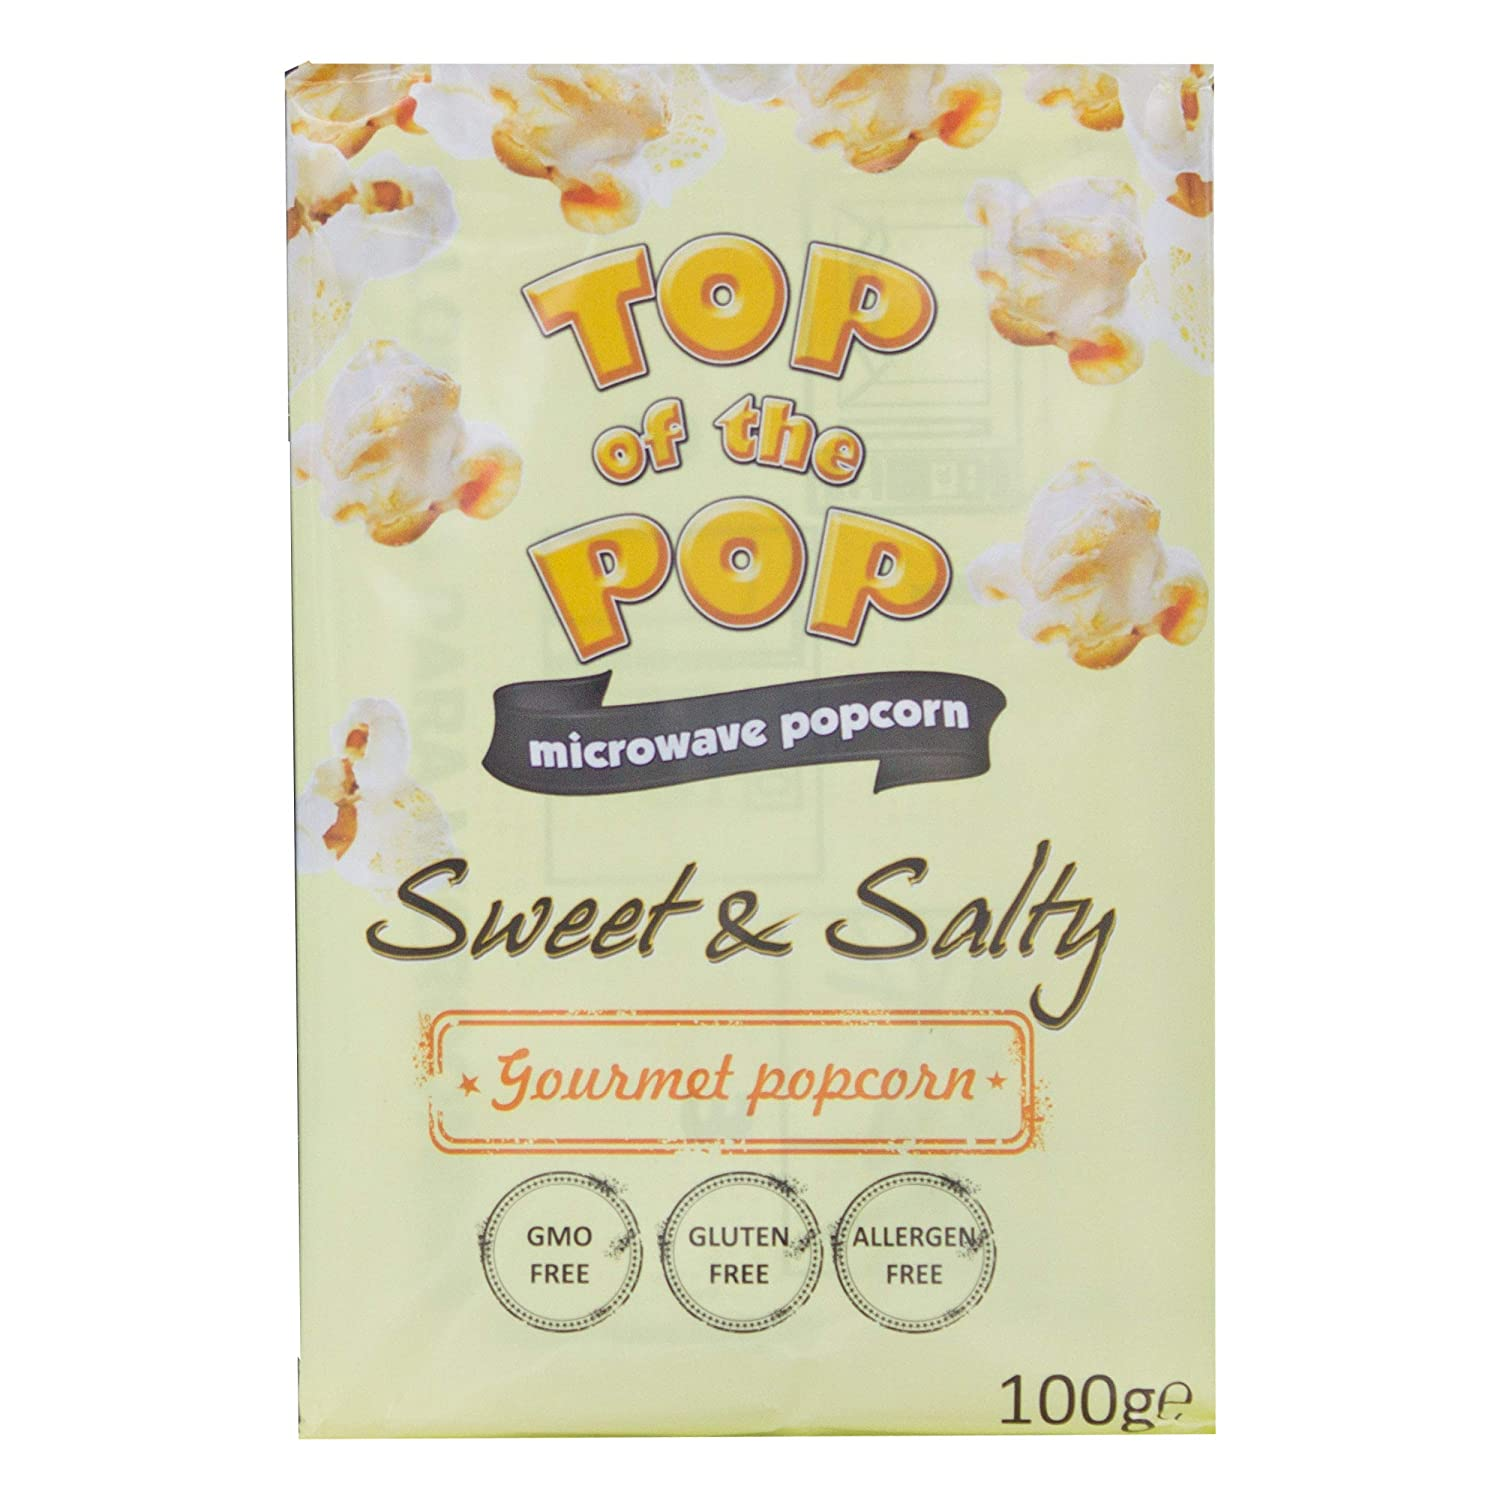 Top of the Pop Microondas palomitas, Sweet & Salty, dulce y salada ...